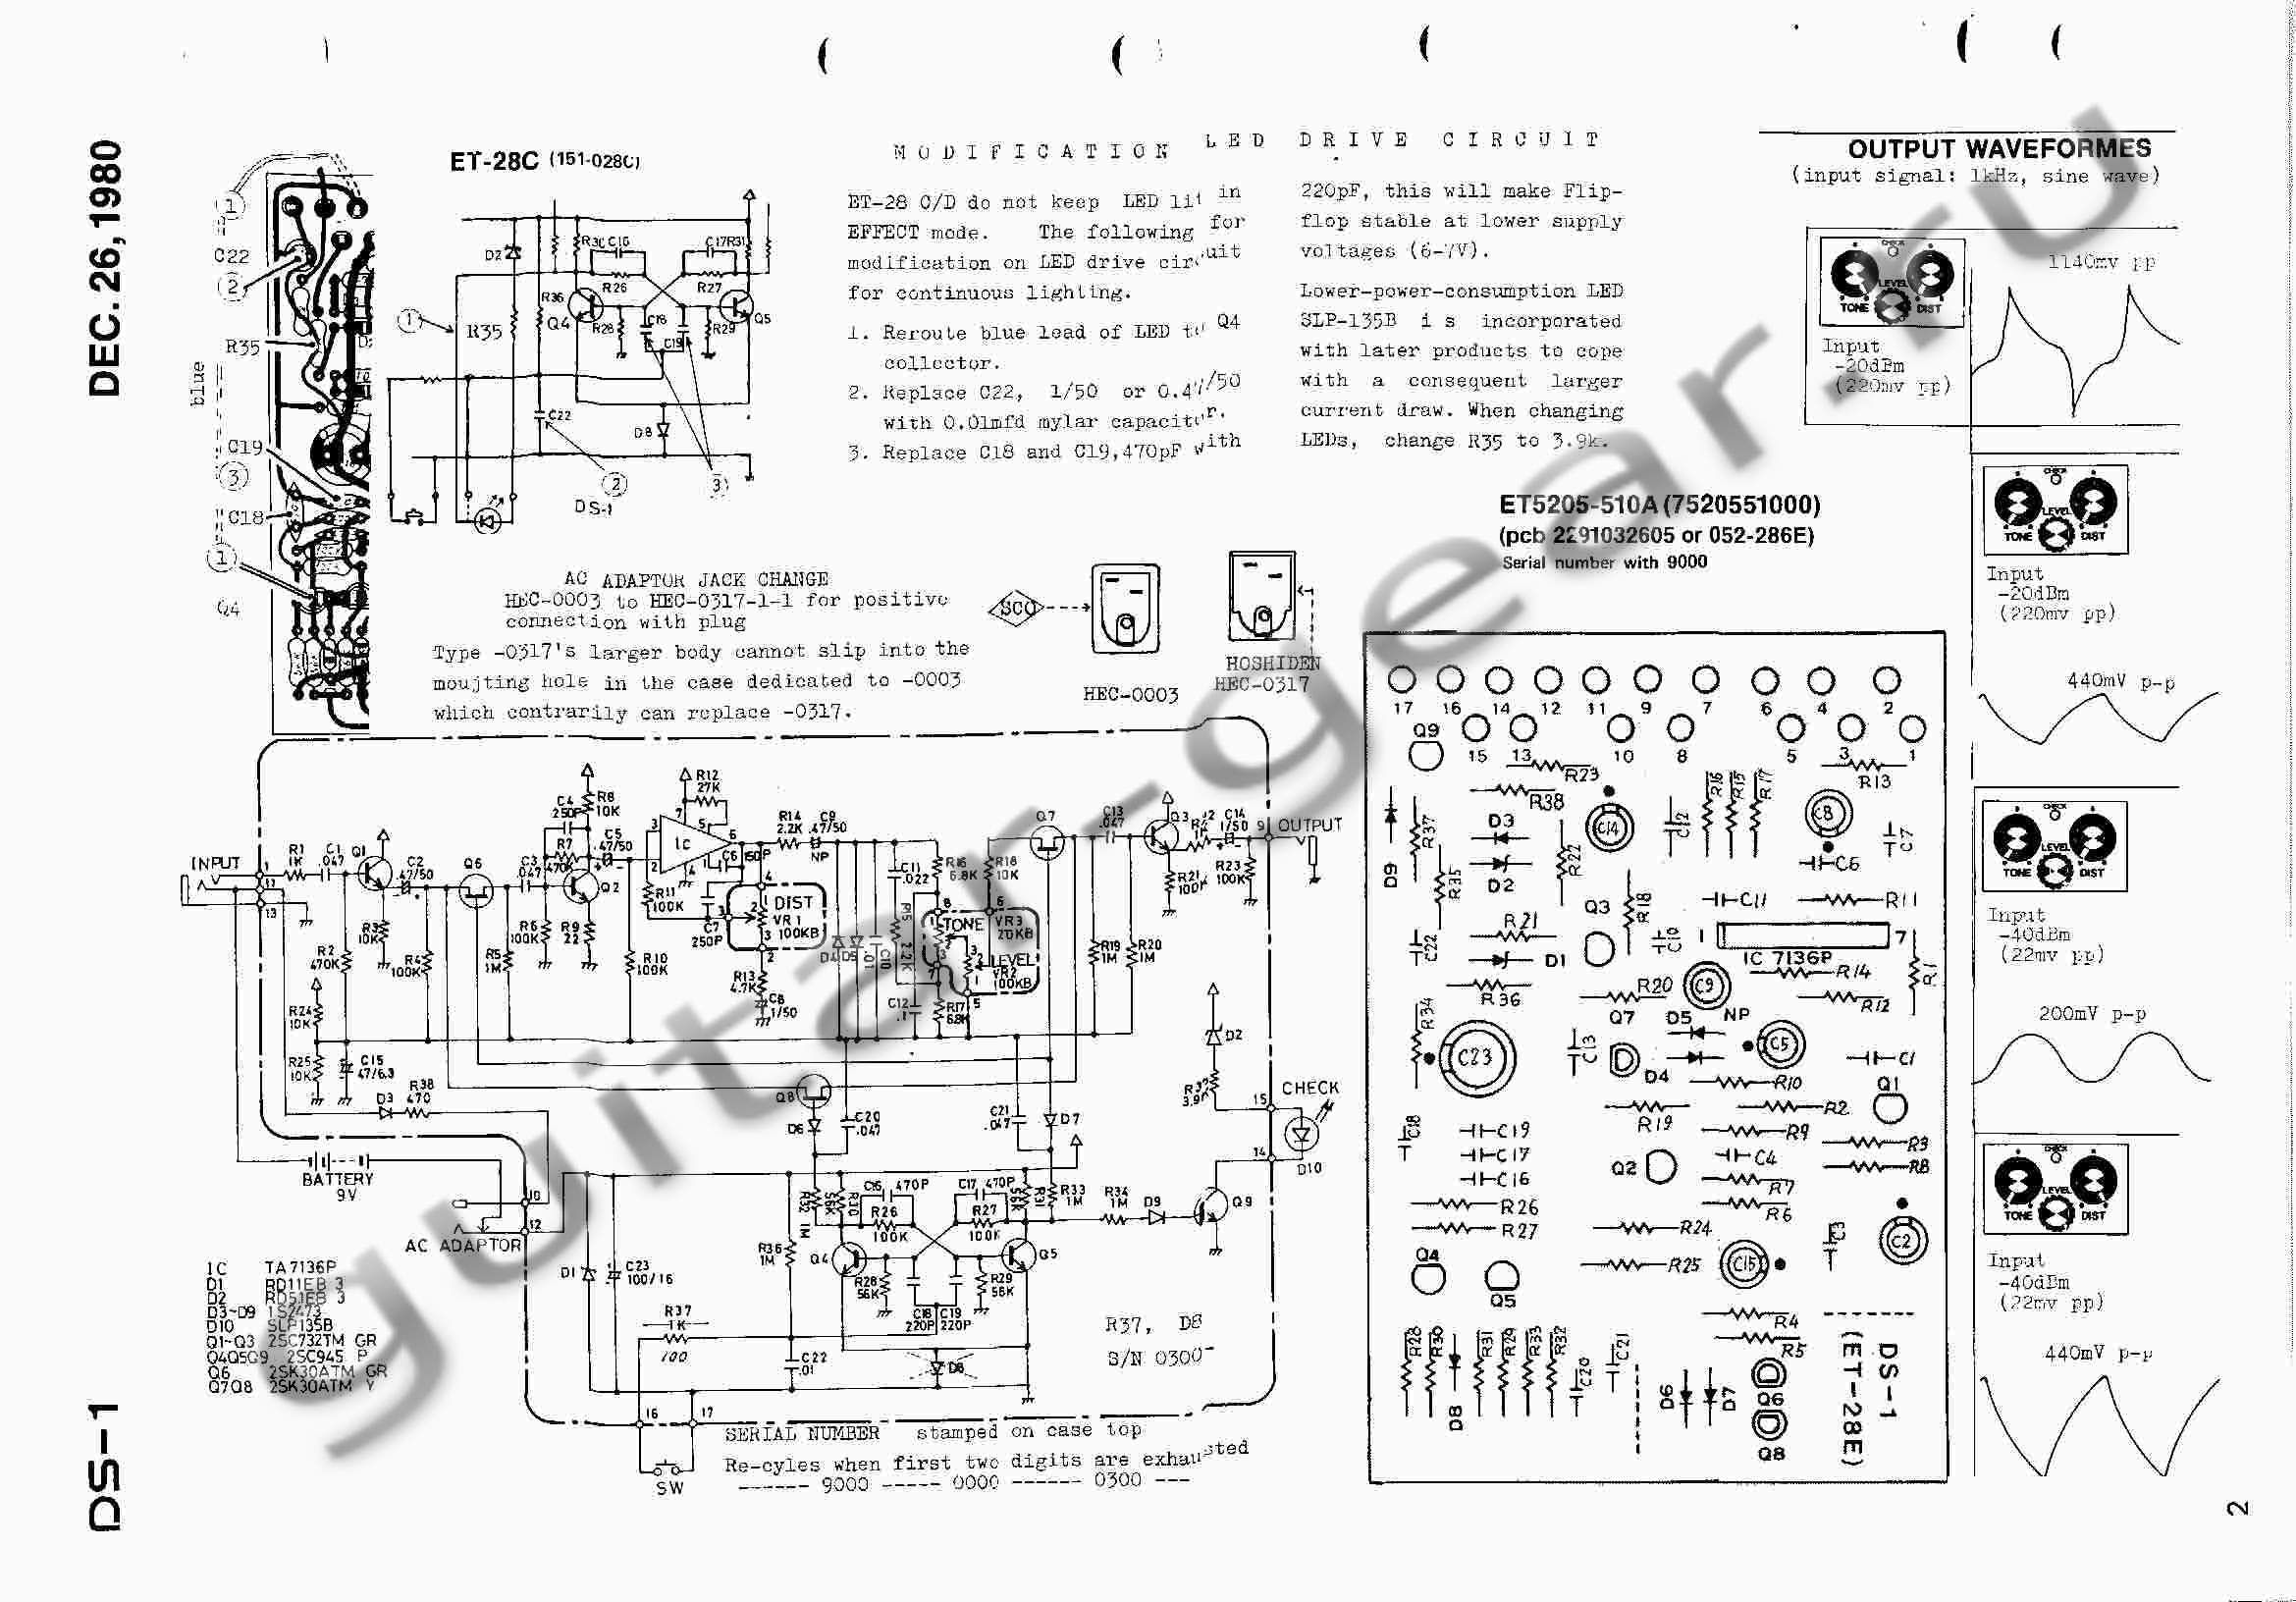 Boss DS-1 — Guitar Gear on boss lm-2 schematic, boss ce-3 schematic, boss od-2 schematic, boss ds 1 modification, boss ds 1 keeley mod, boss sd1 schematic, boss oc-2 schematic, boss sp1, boss ge-7 schematic, boss dm-2 schematic, boss overdrive schematic, boss hm-2 schematic, boss od-1 mod instruction, boss fs 6 footswitch schematic, boss metal zone, boss ph-1 schematic, boss ls 2 schematic, boss mt 2 schematic, boss blues driver schematic, boss ce-2 schematic,